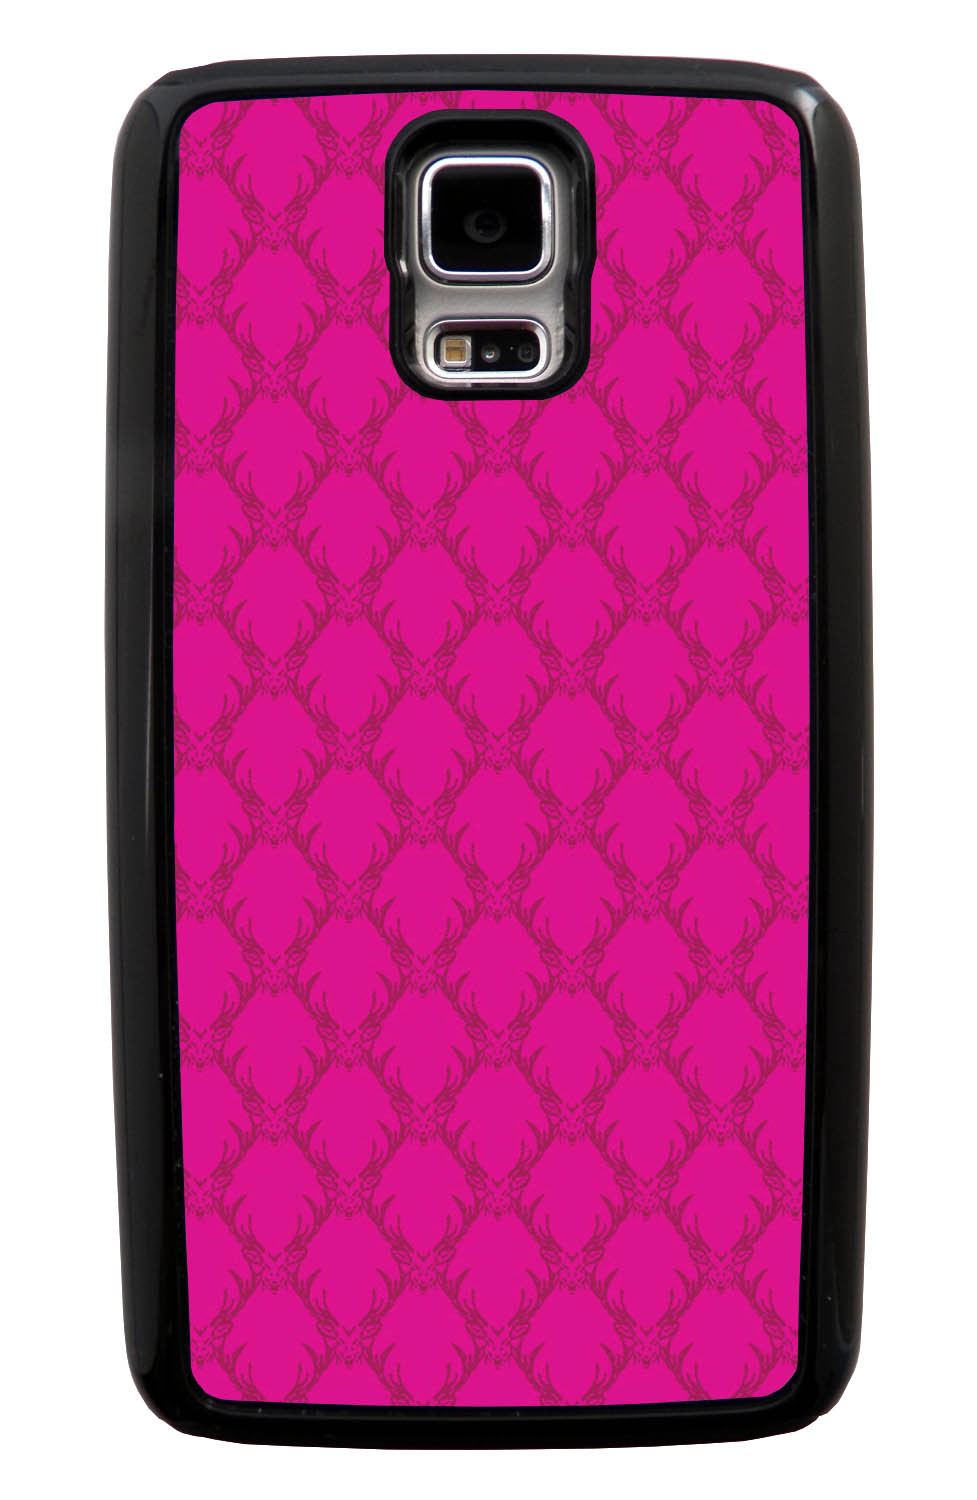 Samsung Galaxy S5 / SV Pink Case - Hot Pink Deer Pattern - Fall And Winter - Black Tough Hybrid Case